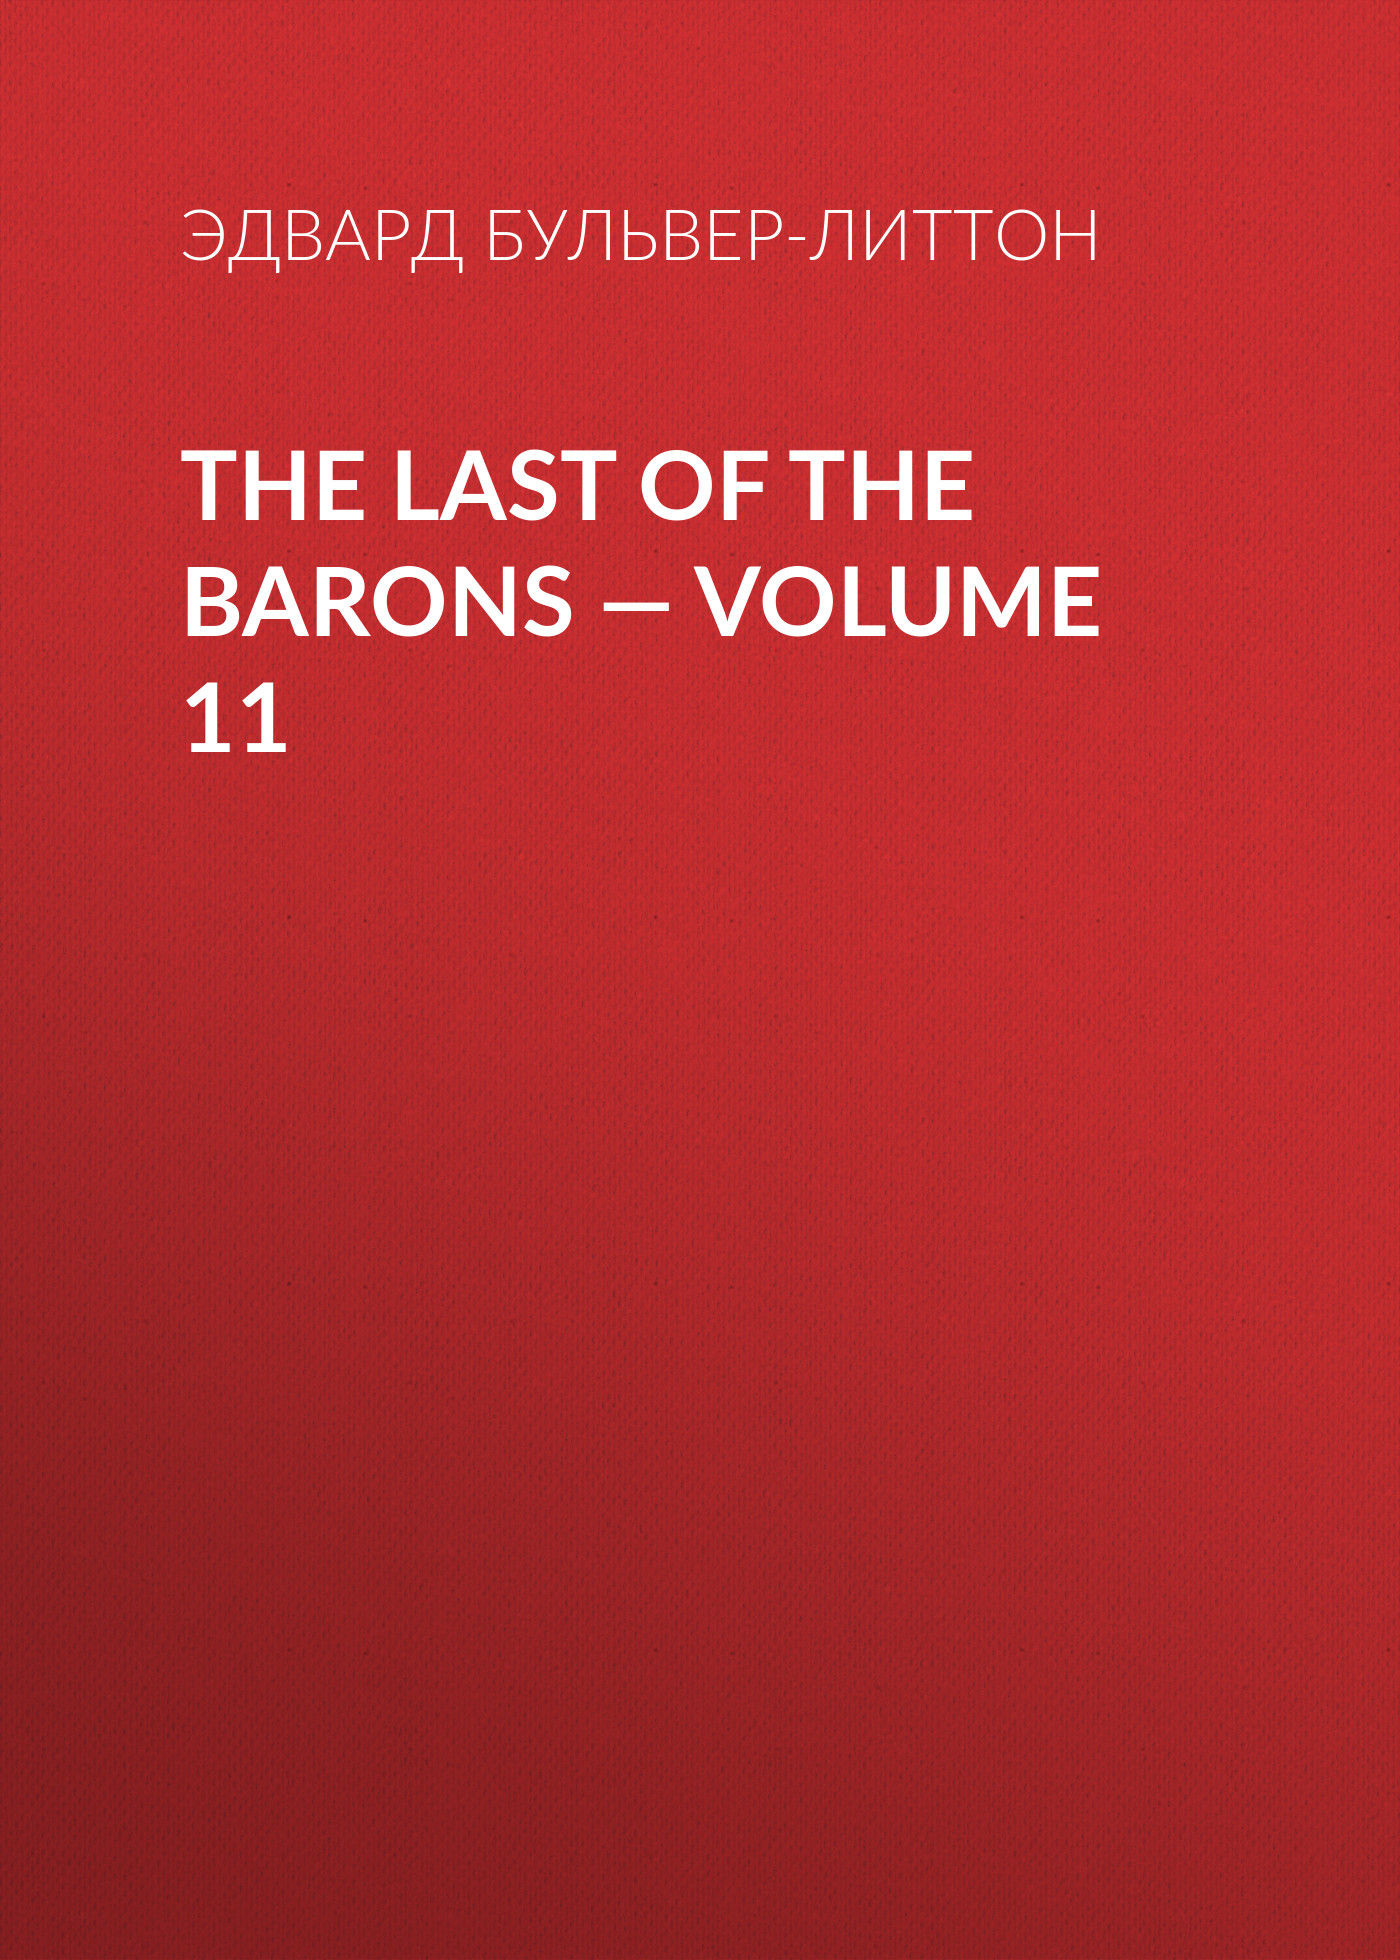 Эдвард Бульвер-Литтон The Last of the Barons — Volume 11 цена